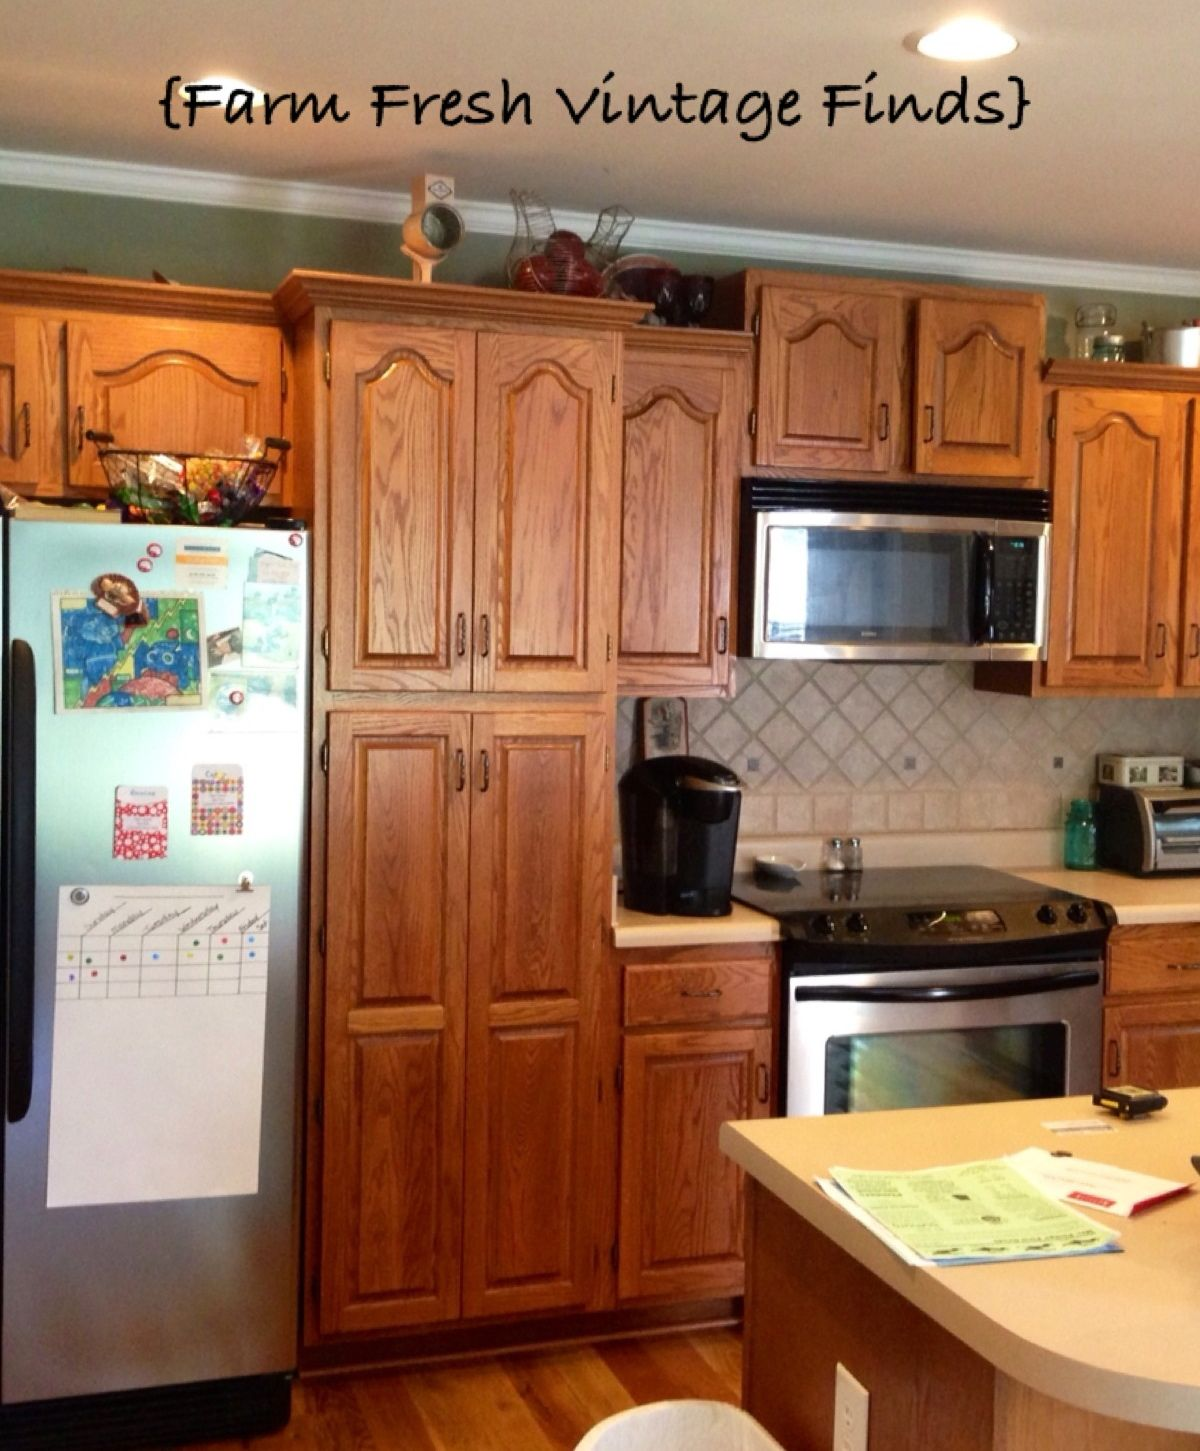 How to Paint Kitchen Cabinets with Chalk paint. | Decorative Touches ...